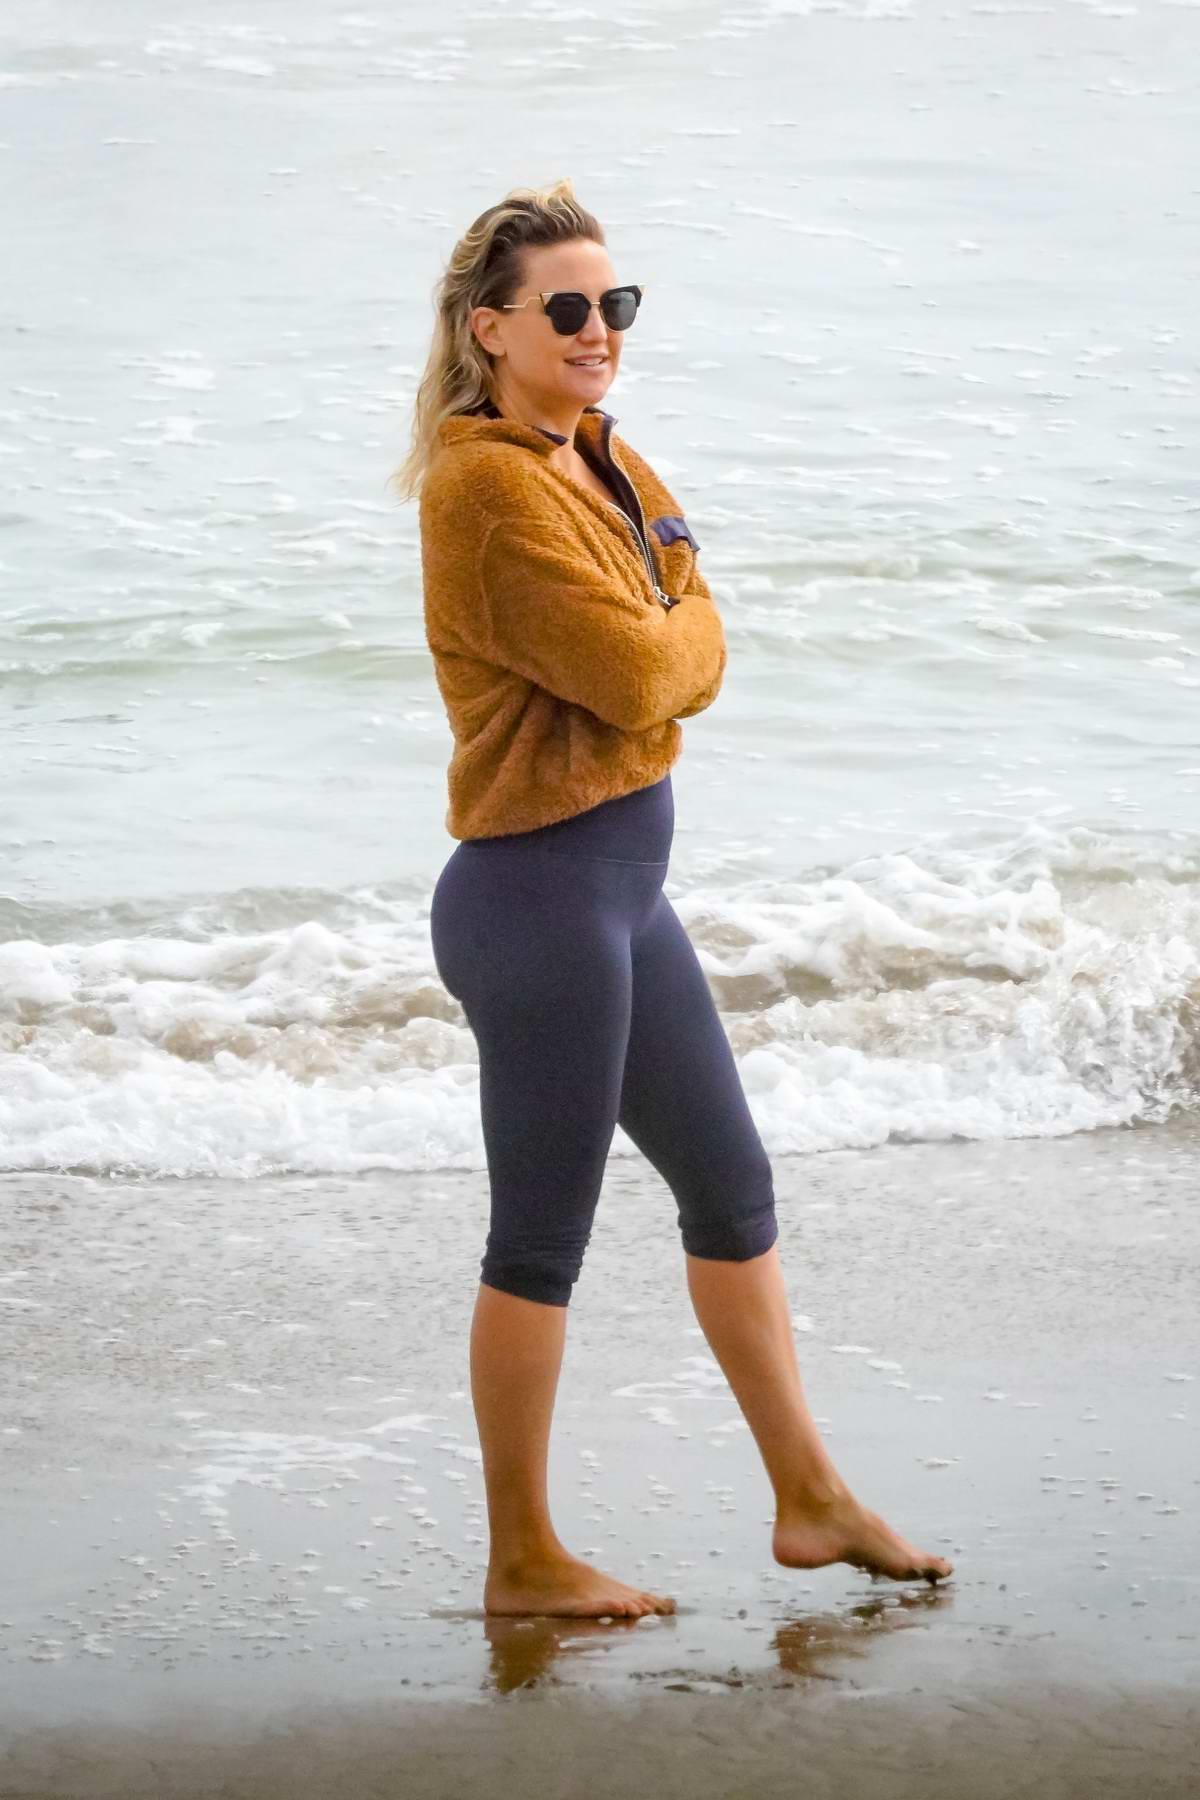 Kate Hudson enjoys a day at the beach with her family in Malibu, California